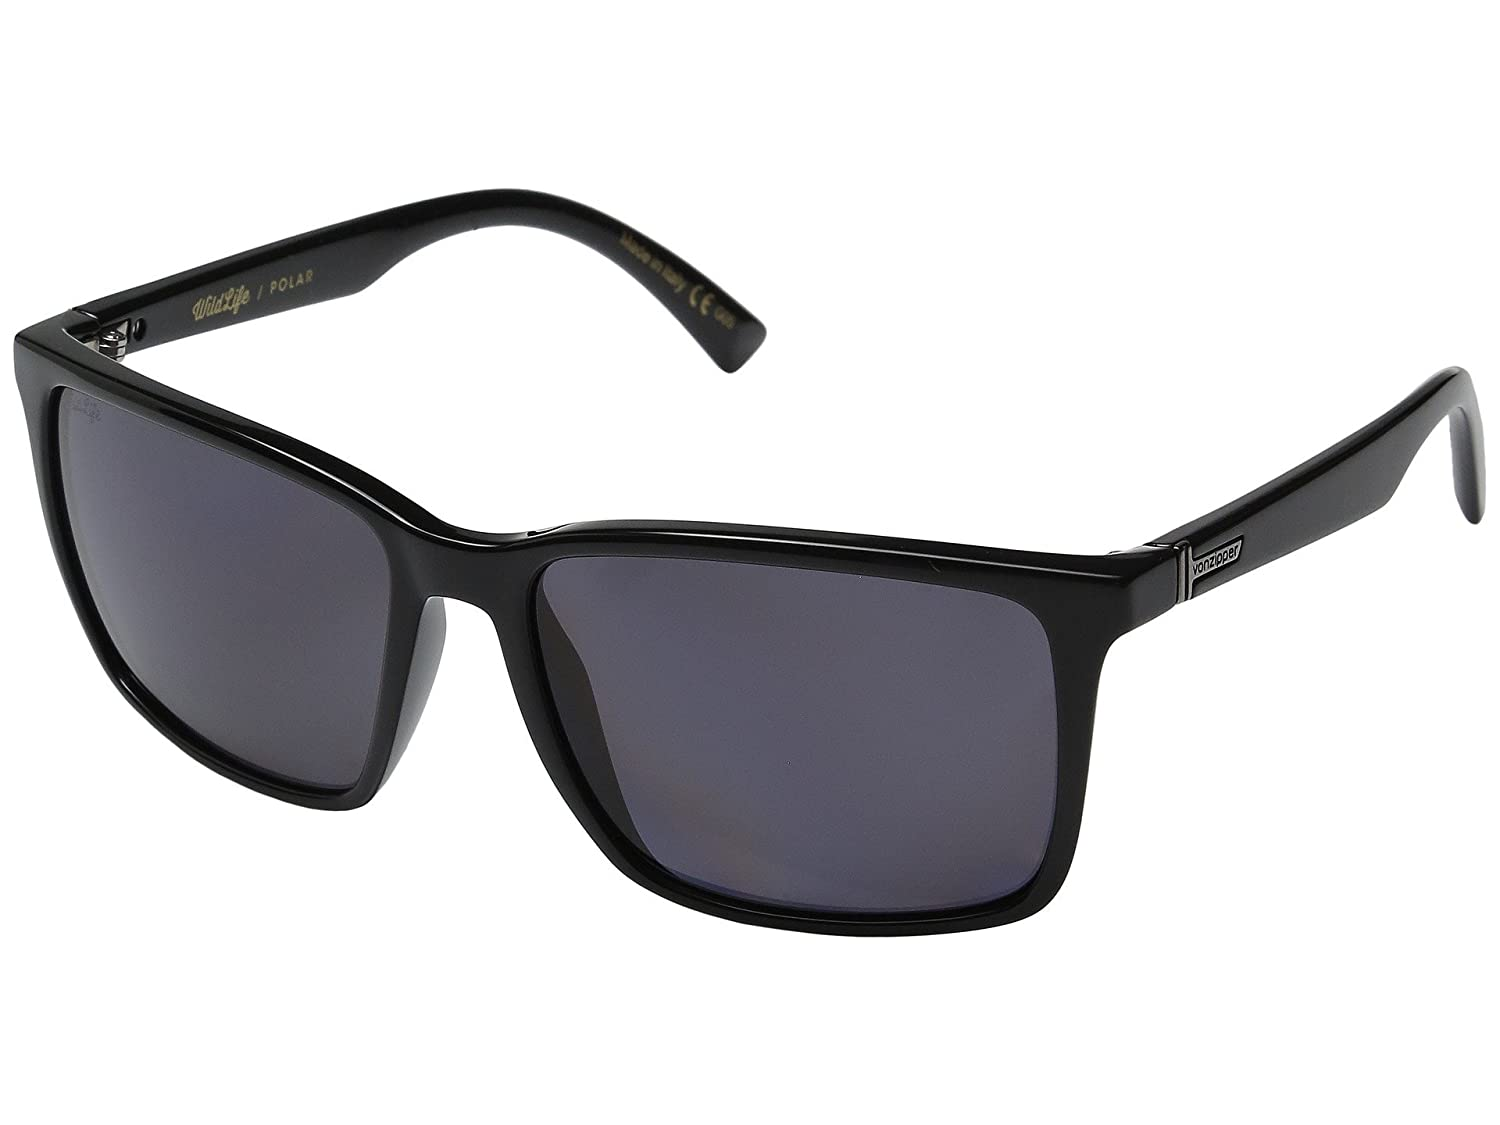 VonZipper Lesmore Sunglasses Black with Wildlife Vintage Grey Polarized Lens